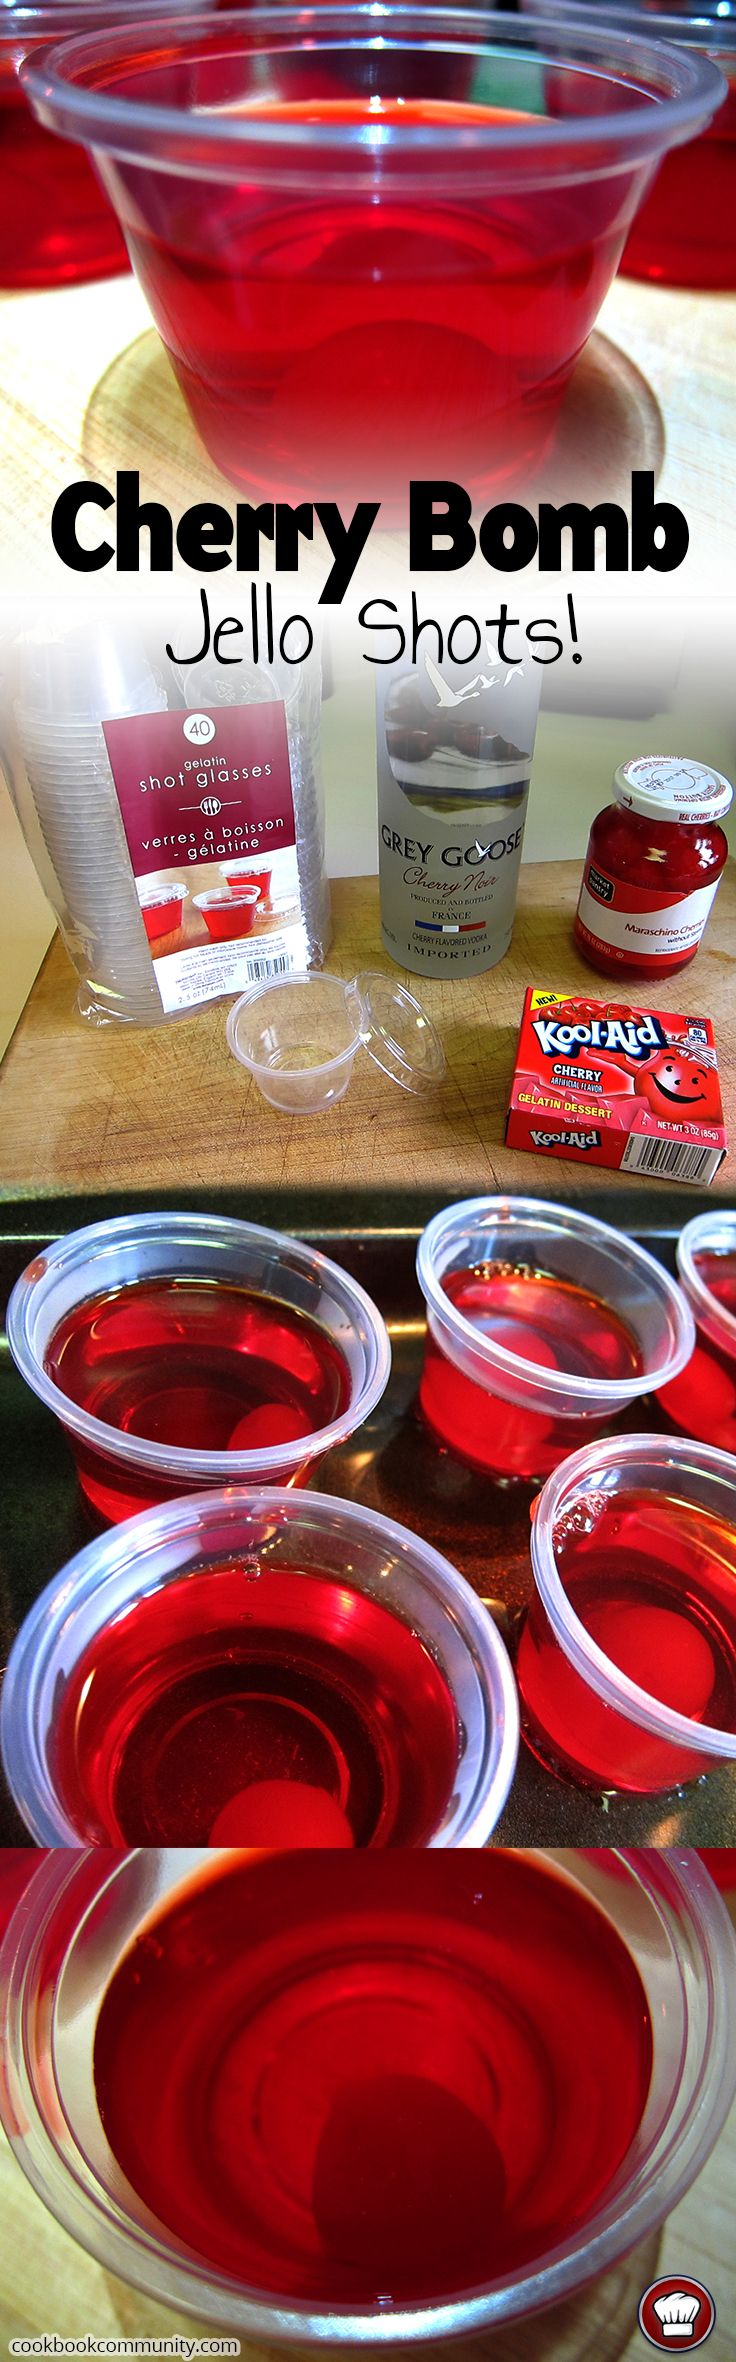 CHERRY BOMB JELLO SHOTS - Jello, Cherries, and Vodka.. WHAT'S NOT TO LOVE ABOUT THIS! EASY TO MAKE!